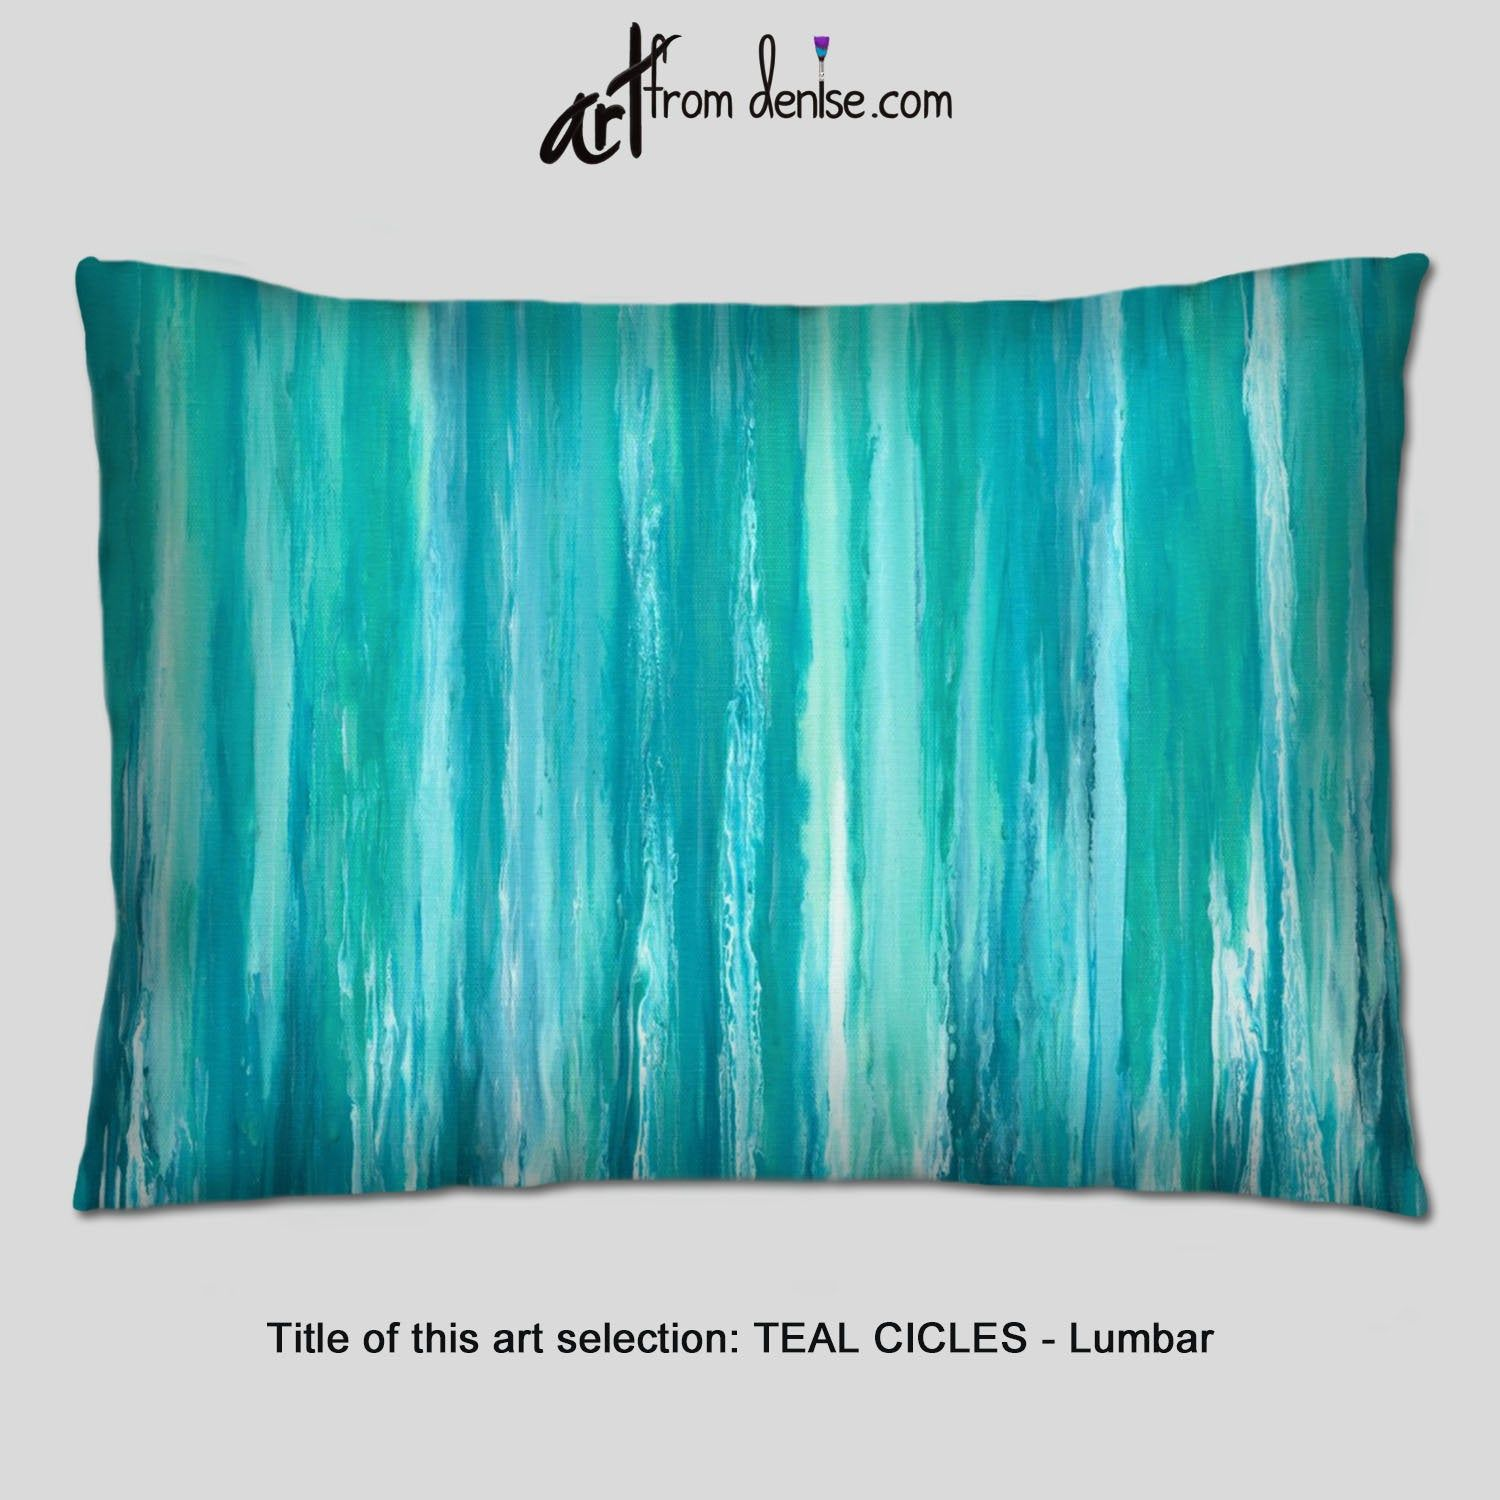 Teal lumbar pillow, White, turquoise green and blue decorative throw pillows for bed decor, couch pillows set or outdoor lumbar